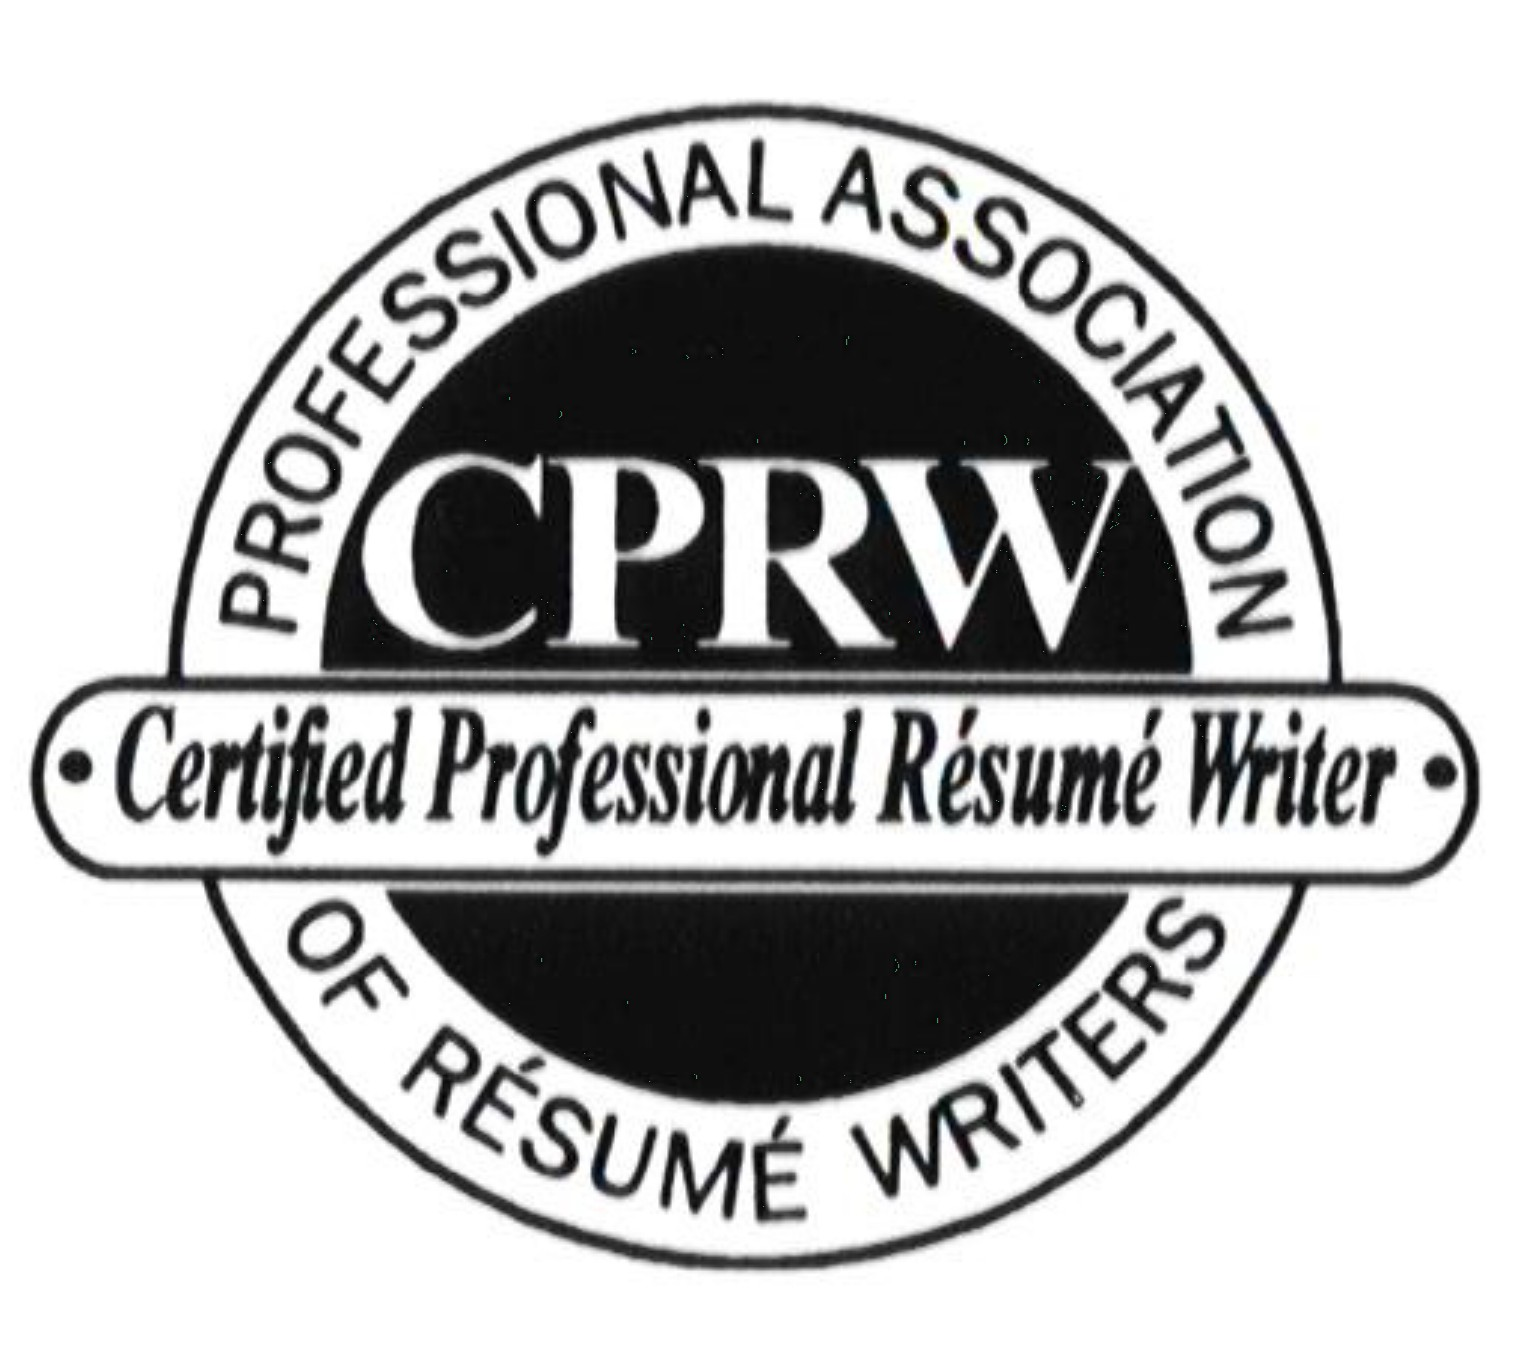 Home Executive Resume Linkedin Profile Writing Outplacement